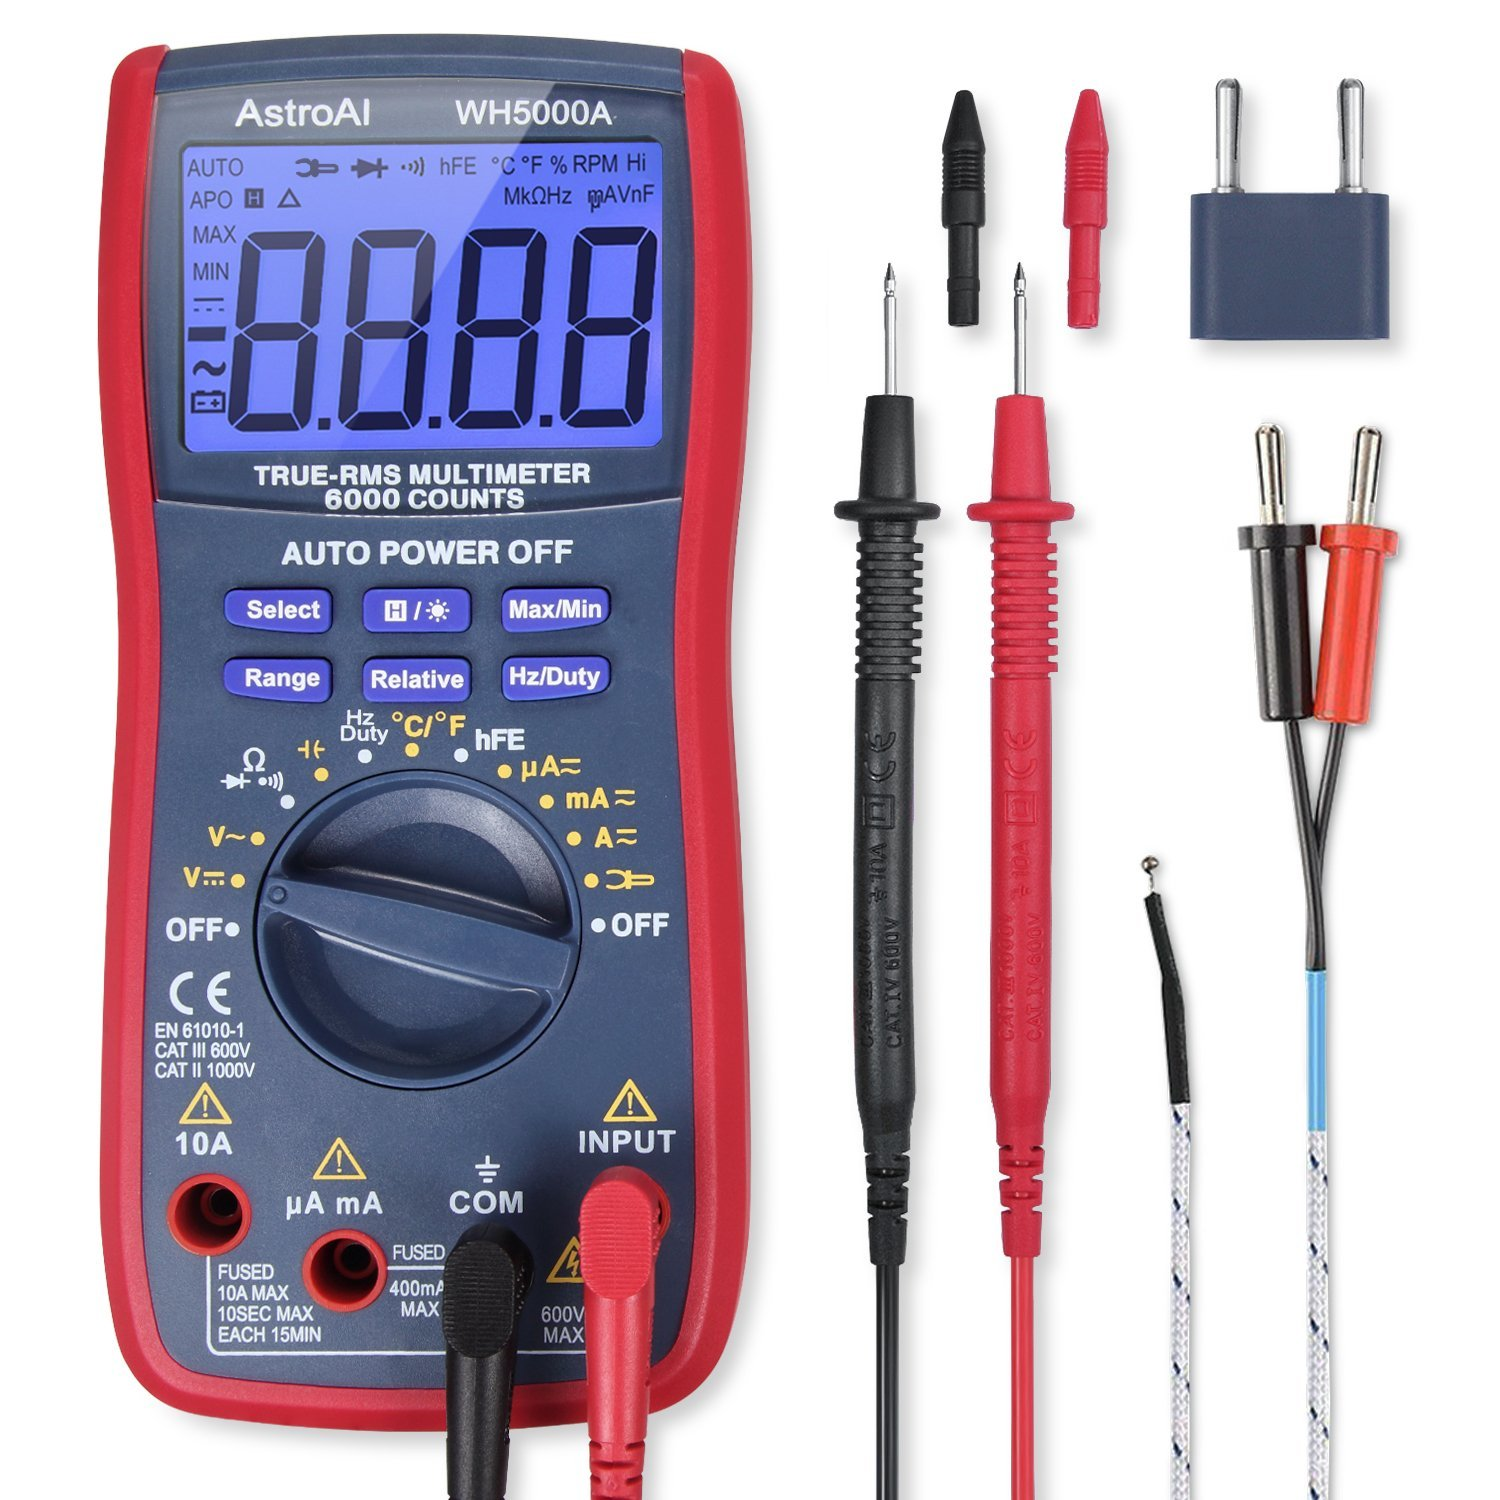 AstroAI Digital Multimeter, TRMS 6000 Counts Volt Meter Manual and Auto Ranging; Measures Voltage Tester, Current, Resistance, Continuity, Frequency; Tests Diodes, Transistors, Temperature, Red